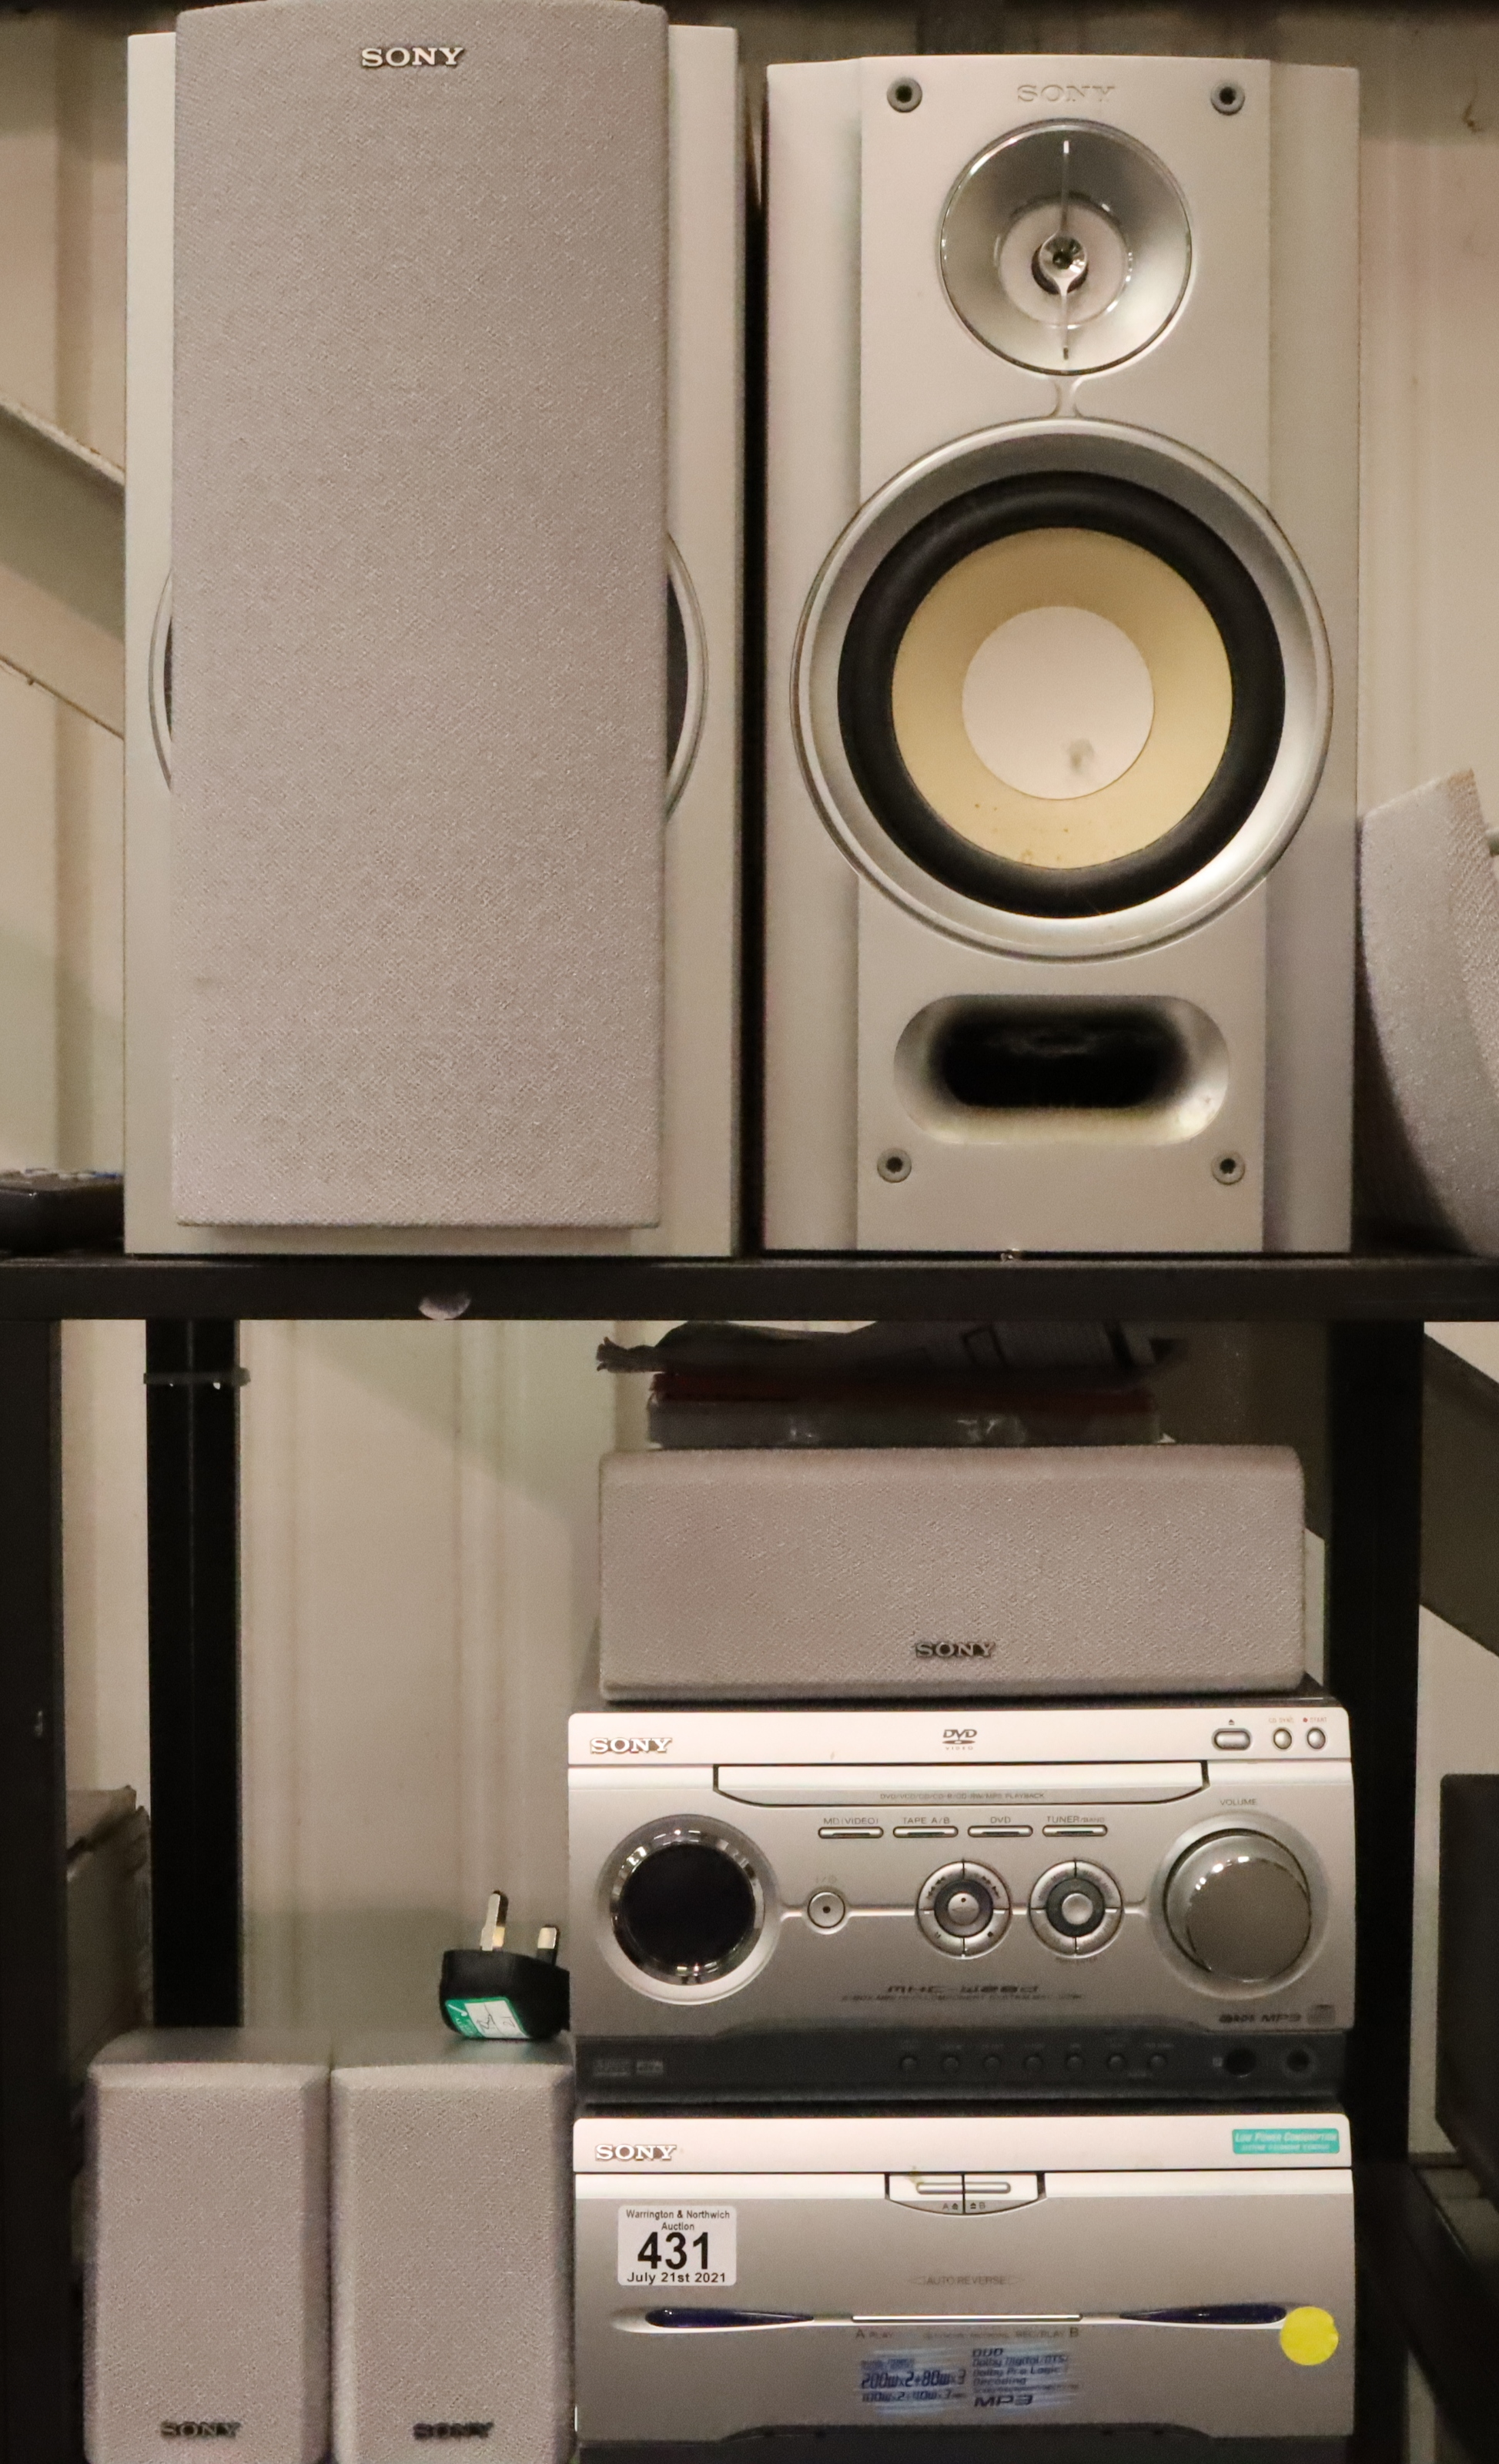 Sony Music and media full surround system. (remotes in office 489) Not available for in-house P&P,